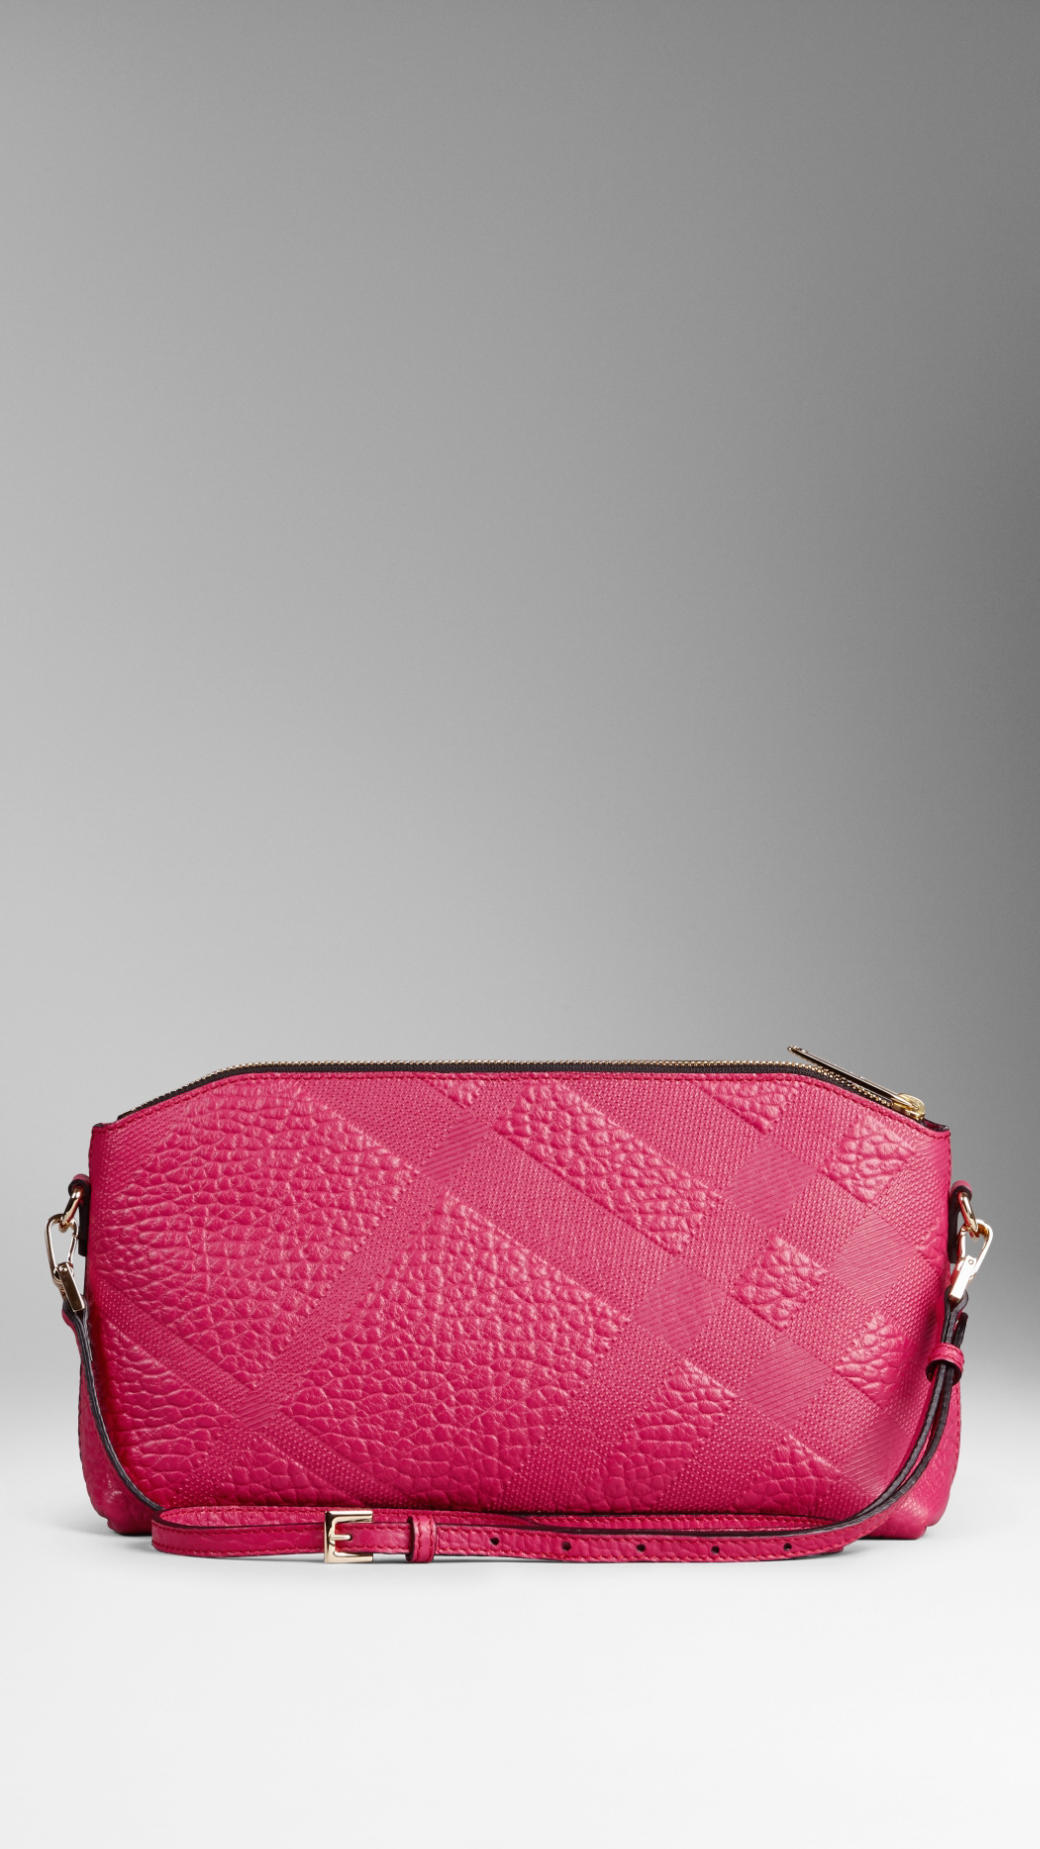 184ec65c3600 Lyst - Burberry Small Embossed Check Leather Clutch Bag in Pink